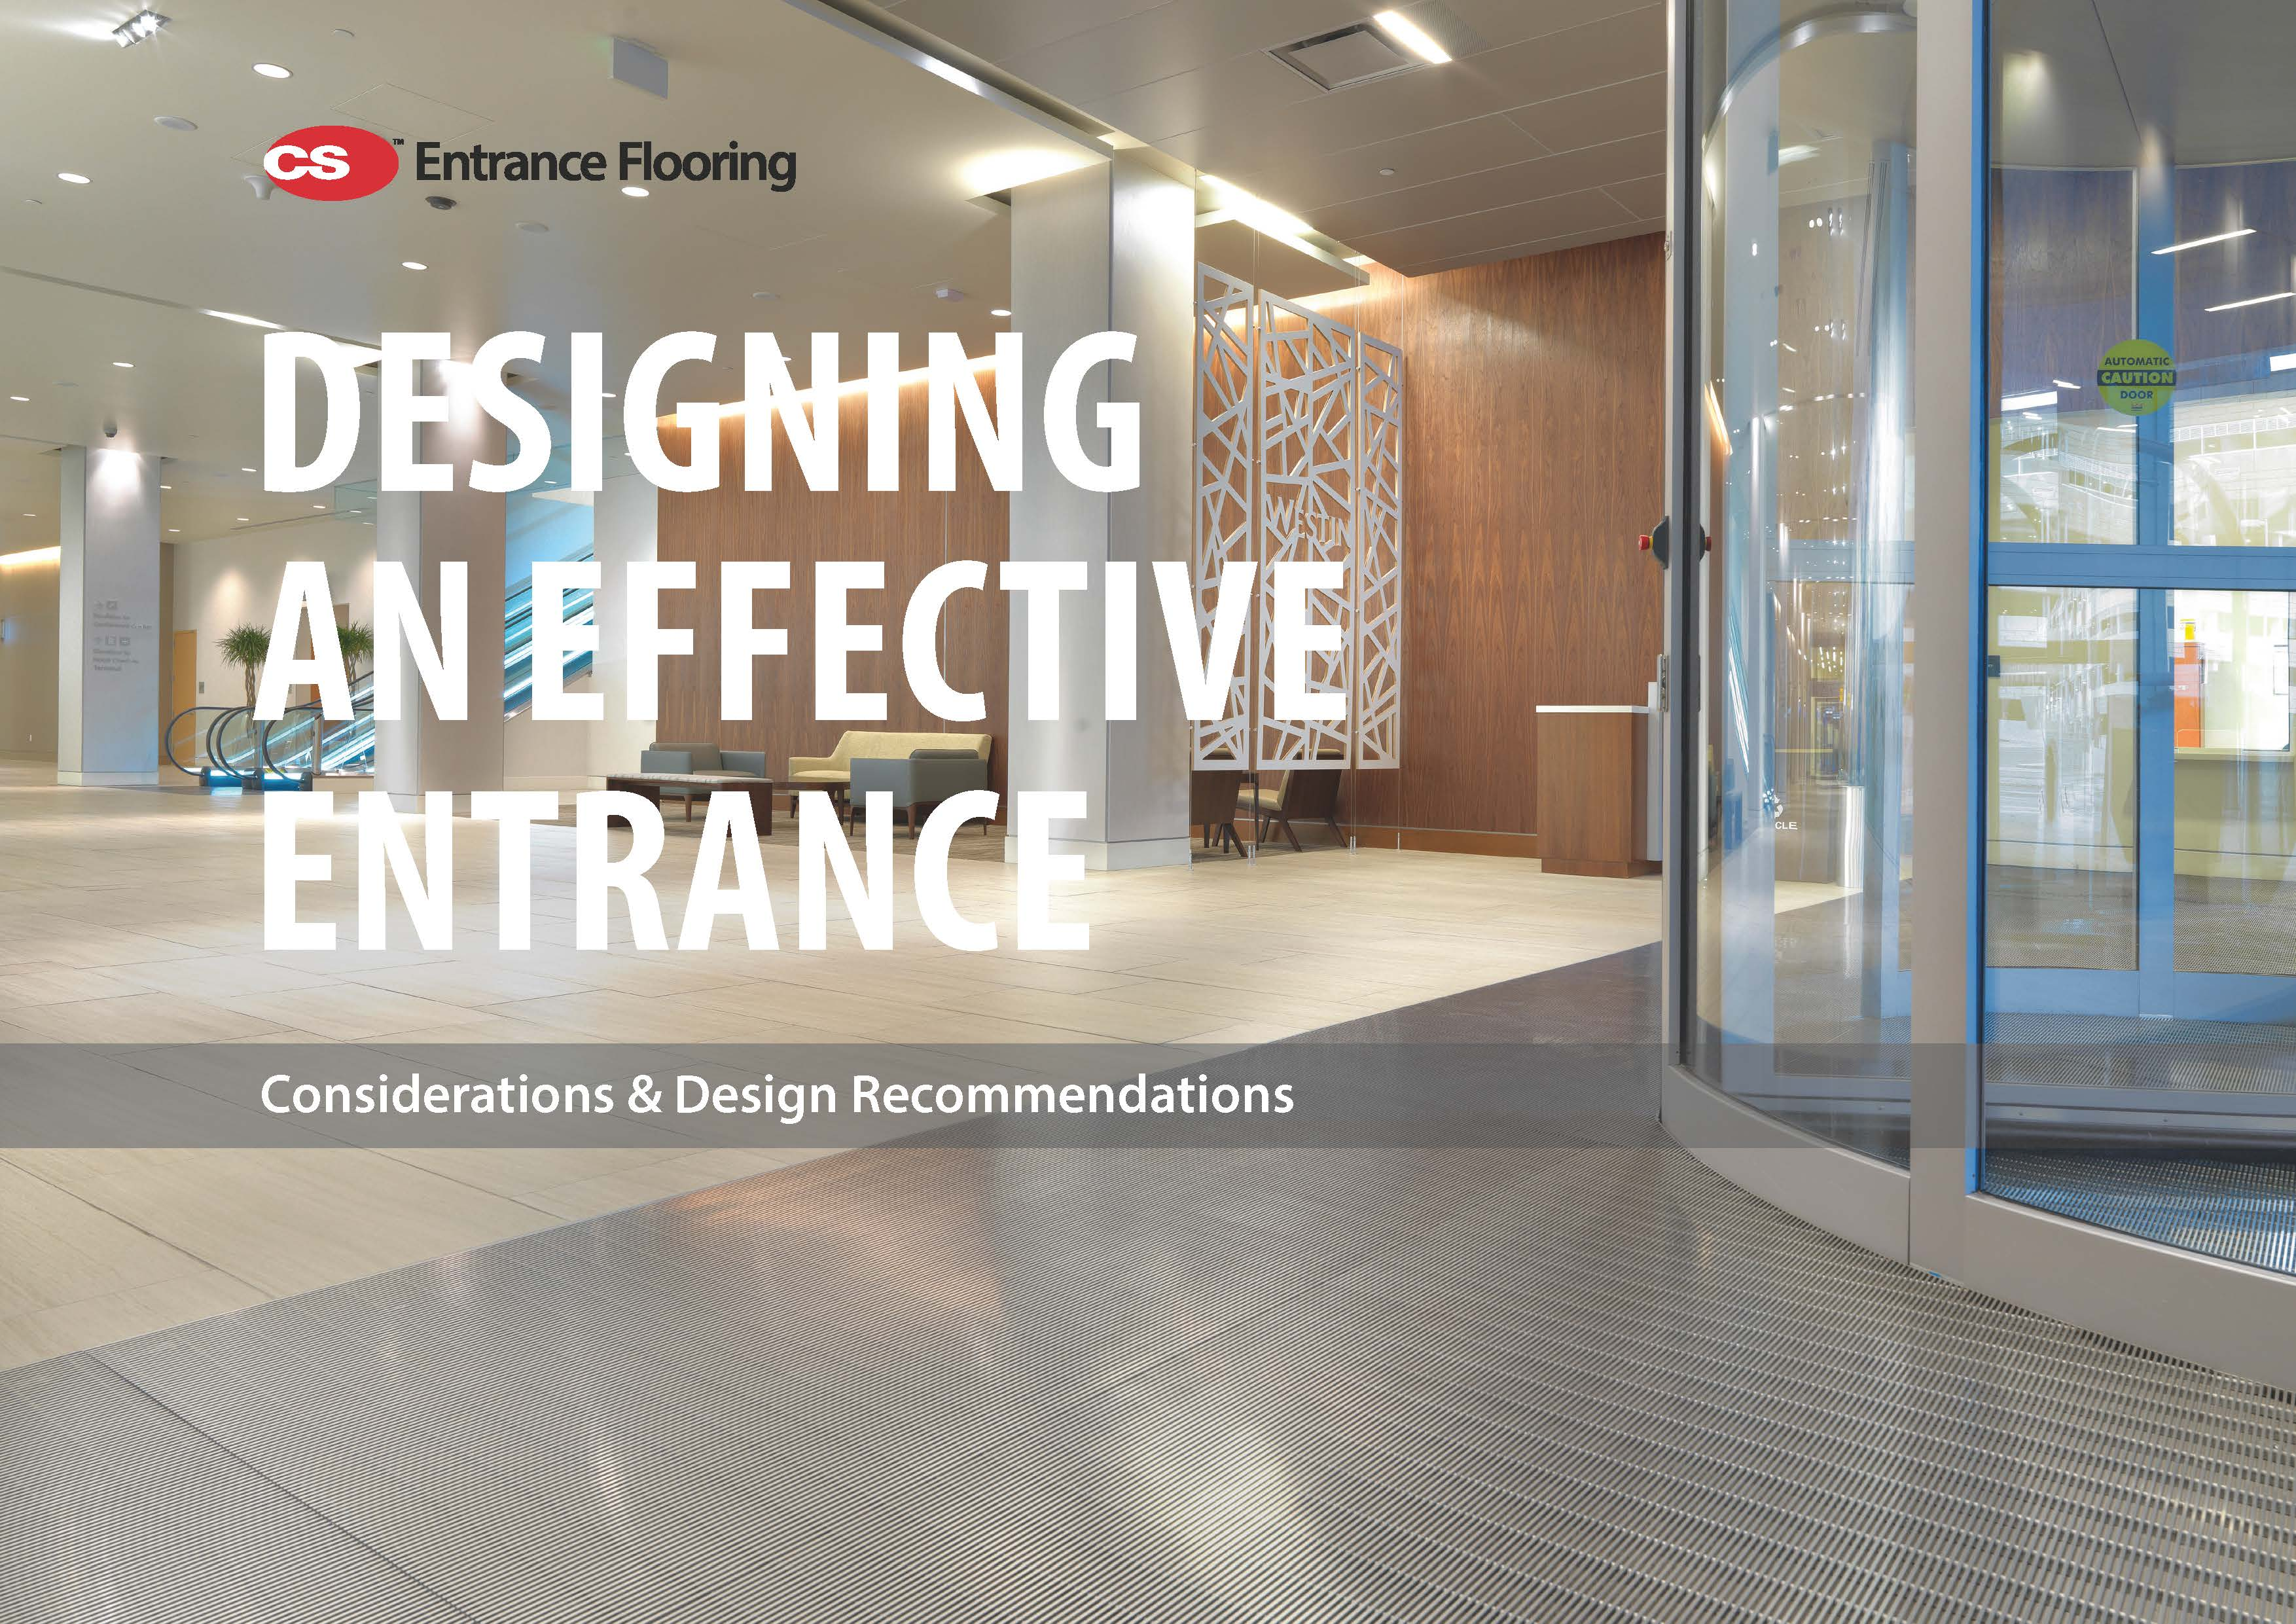 Best Practice Guide to Entrance Design Architecture | CS UK